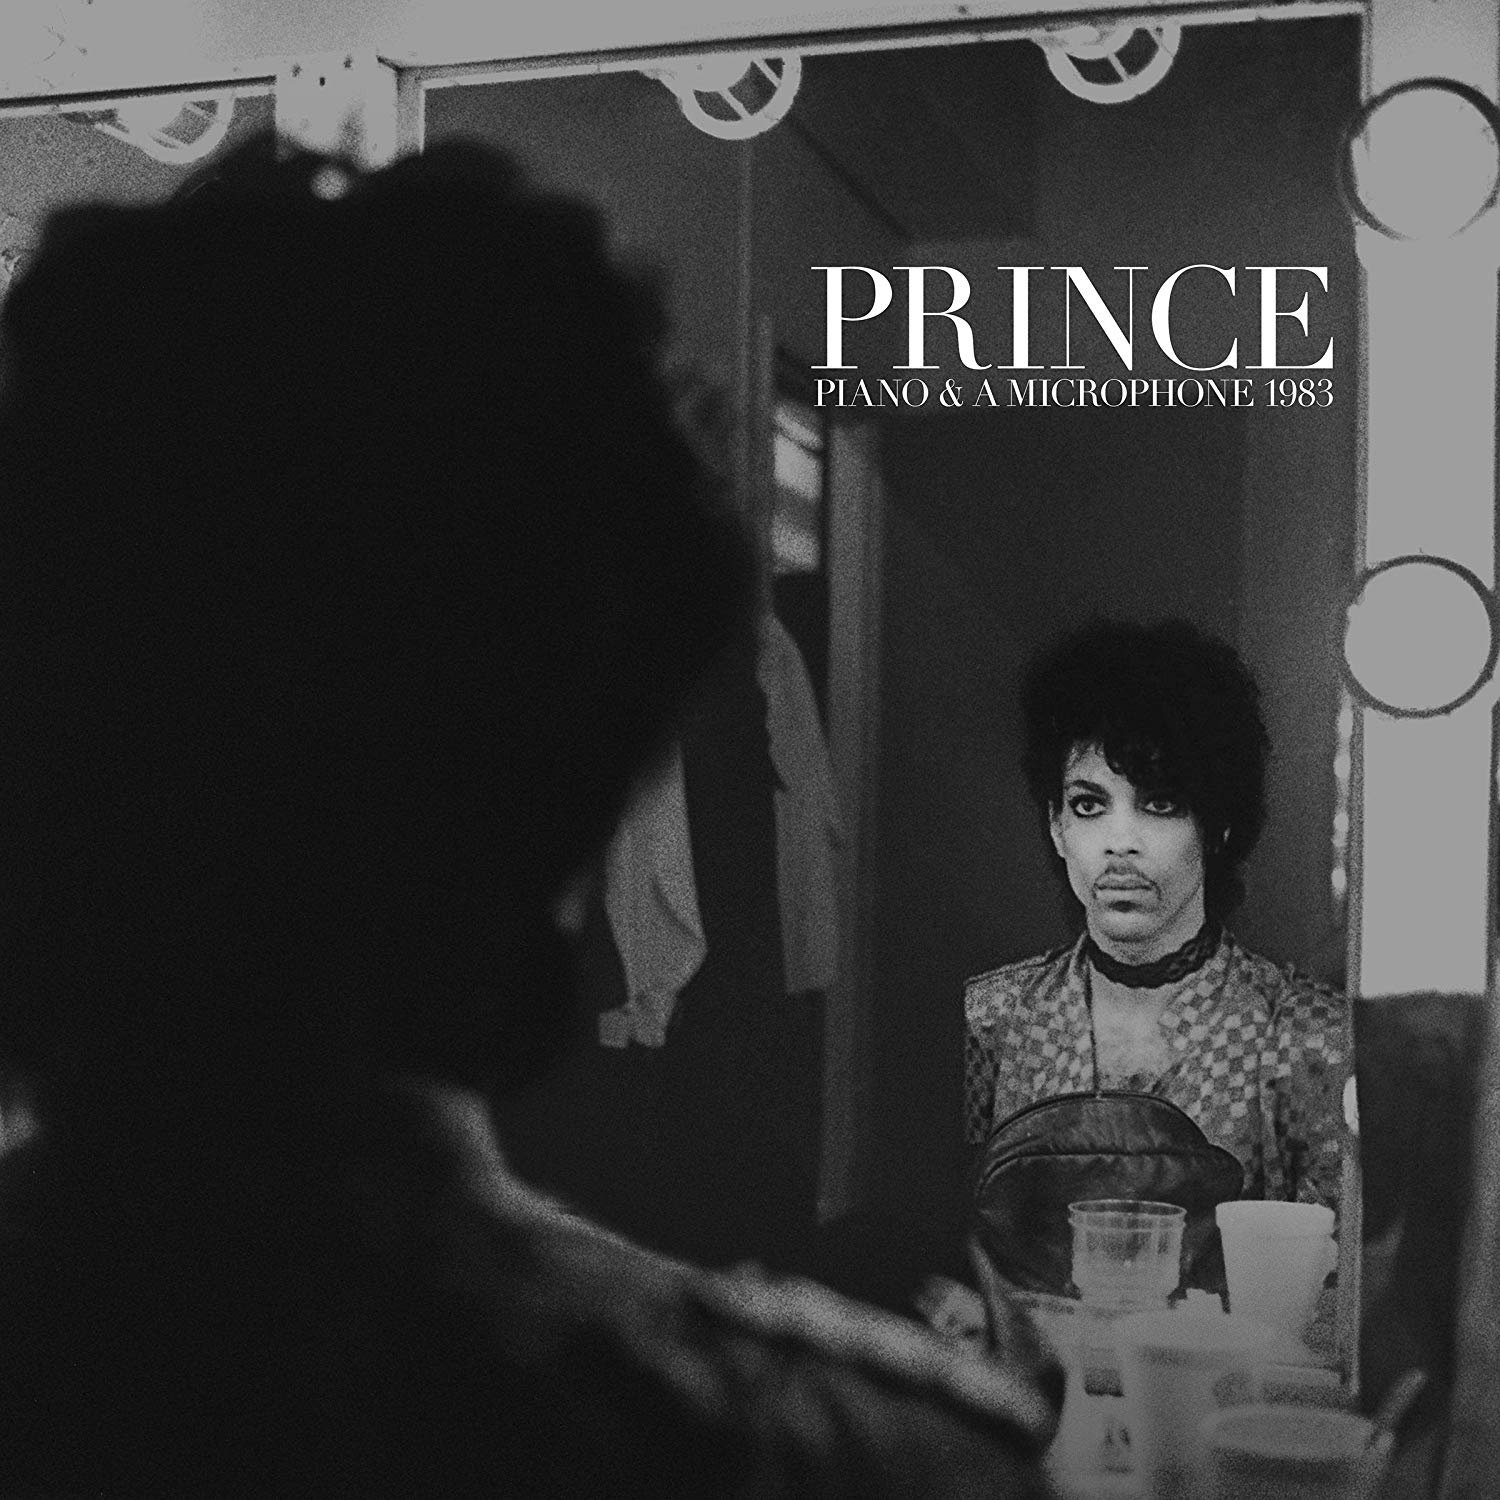 Prince, Piano & a Microphone 1983